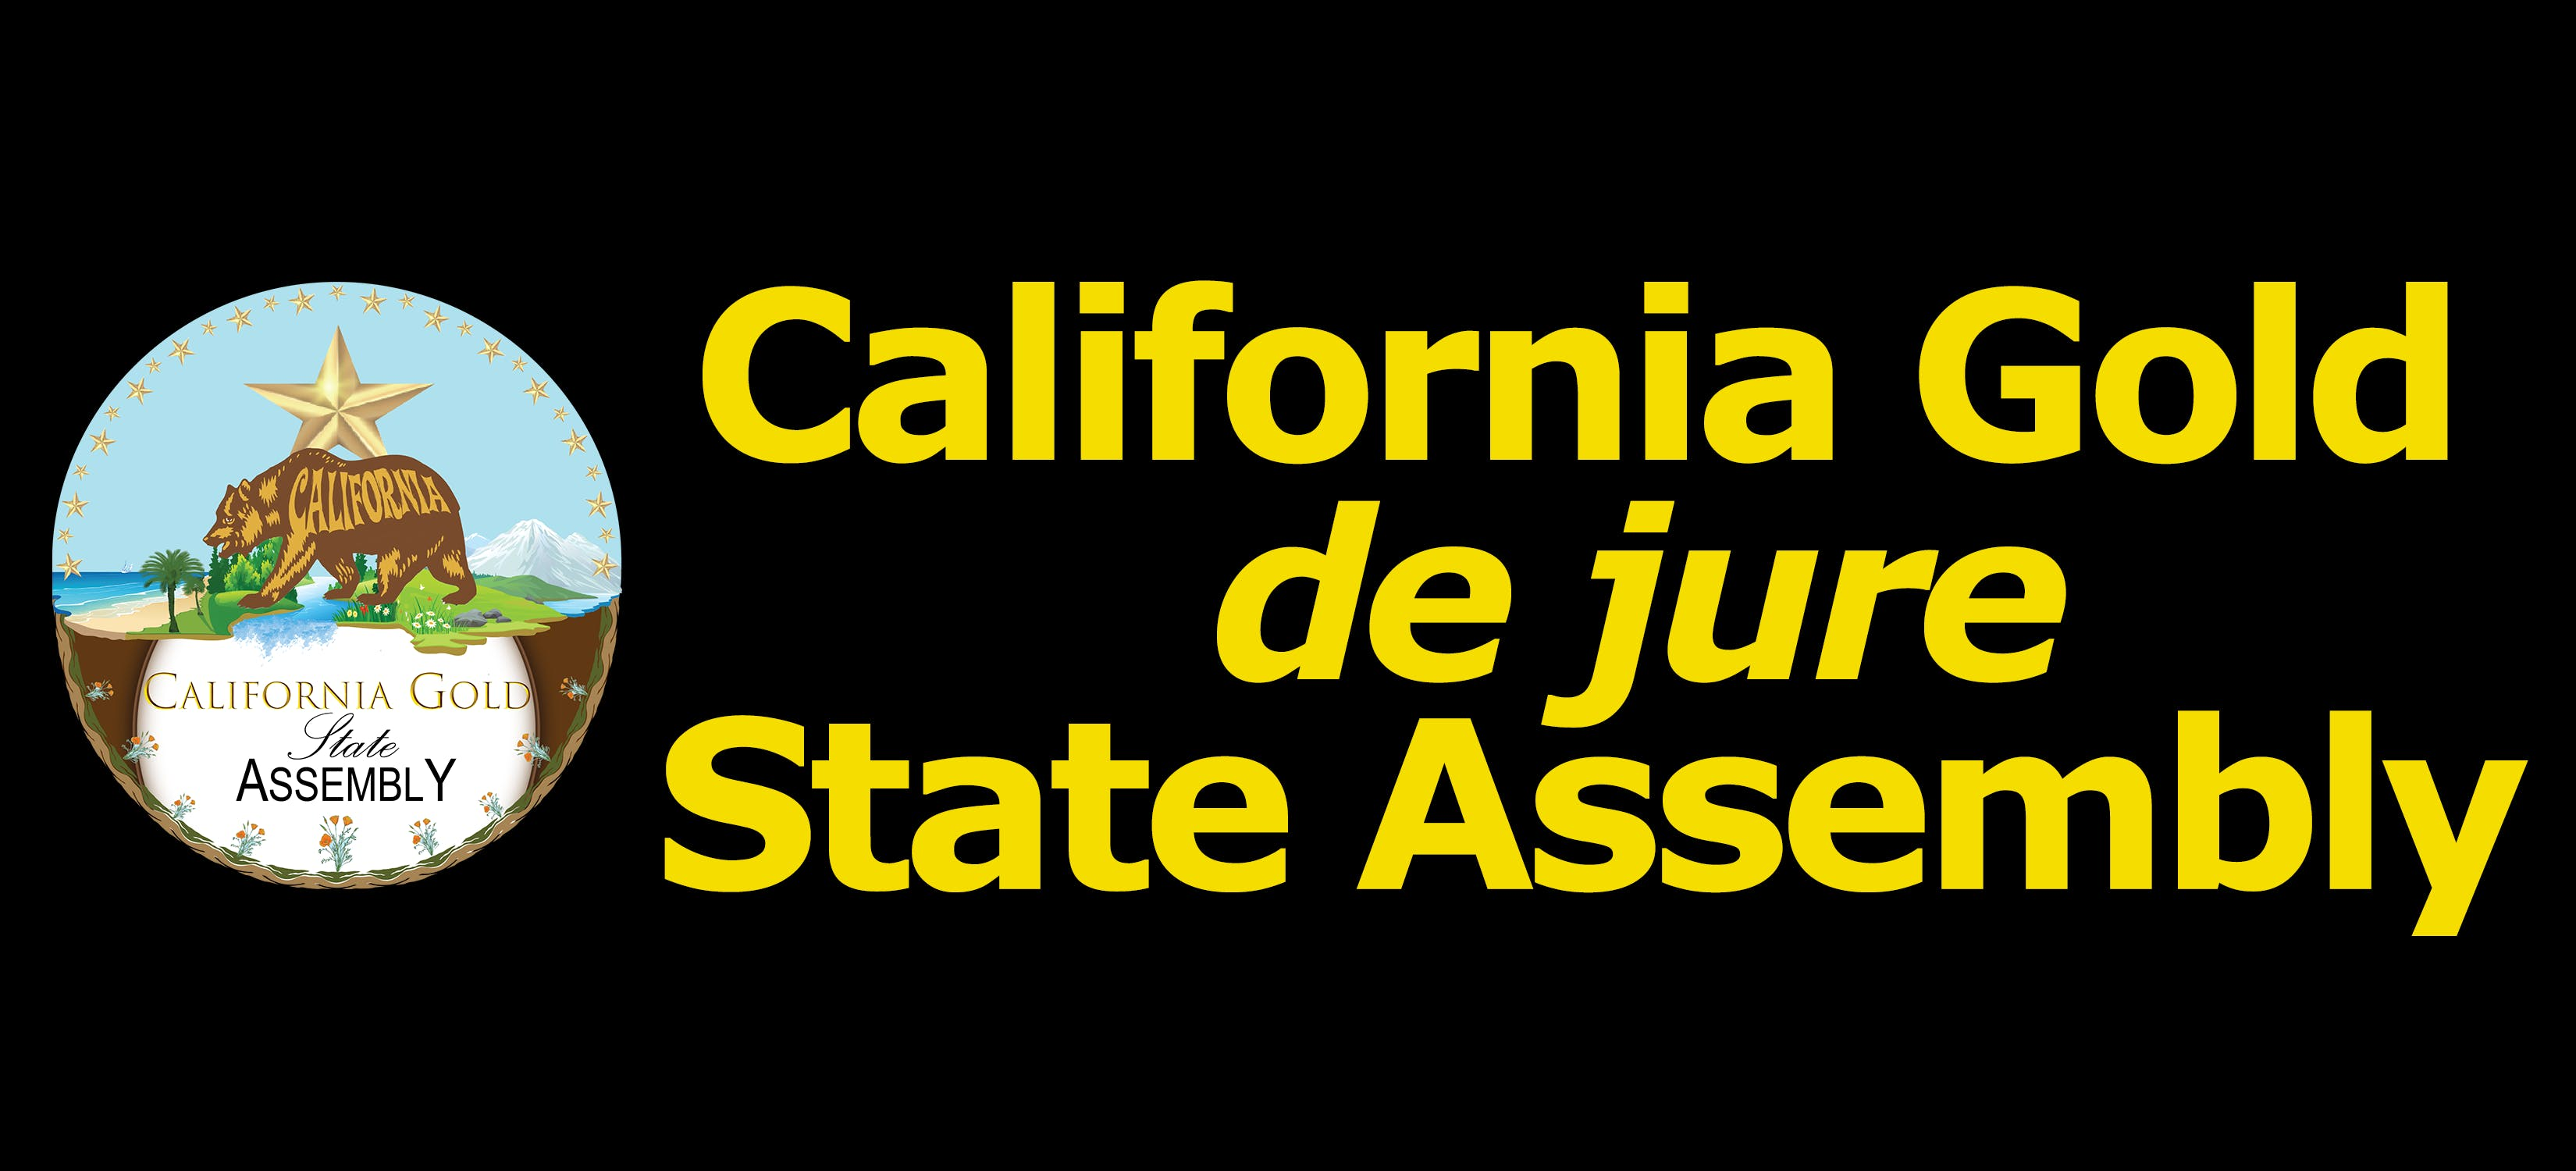 California Gold State Assembly